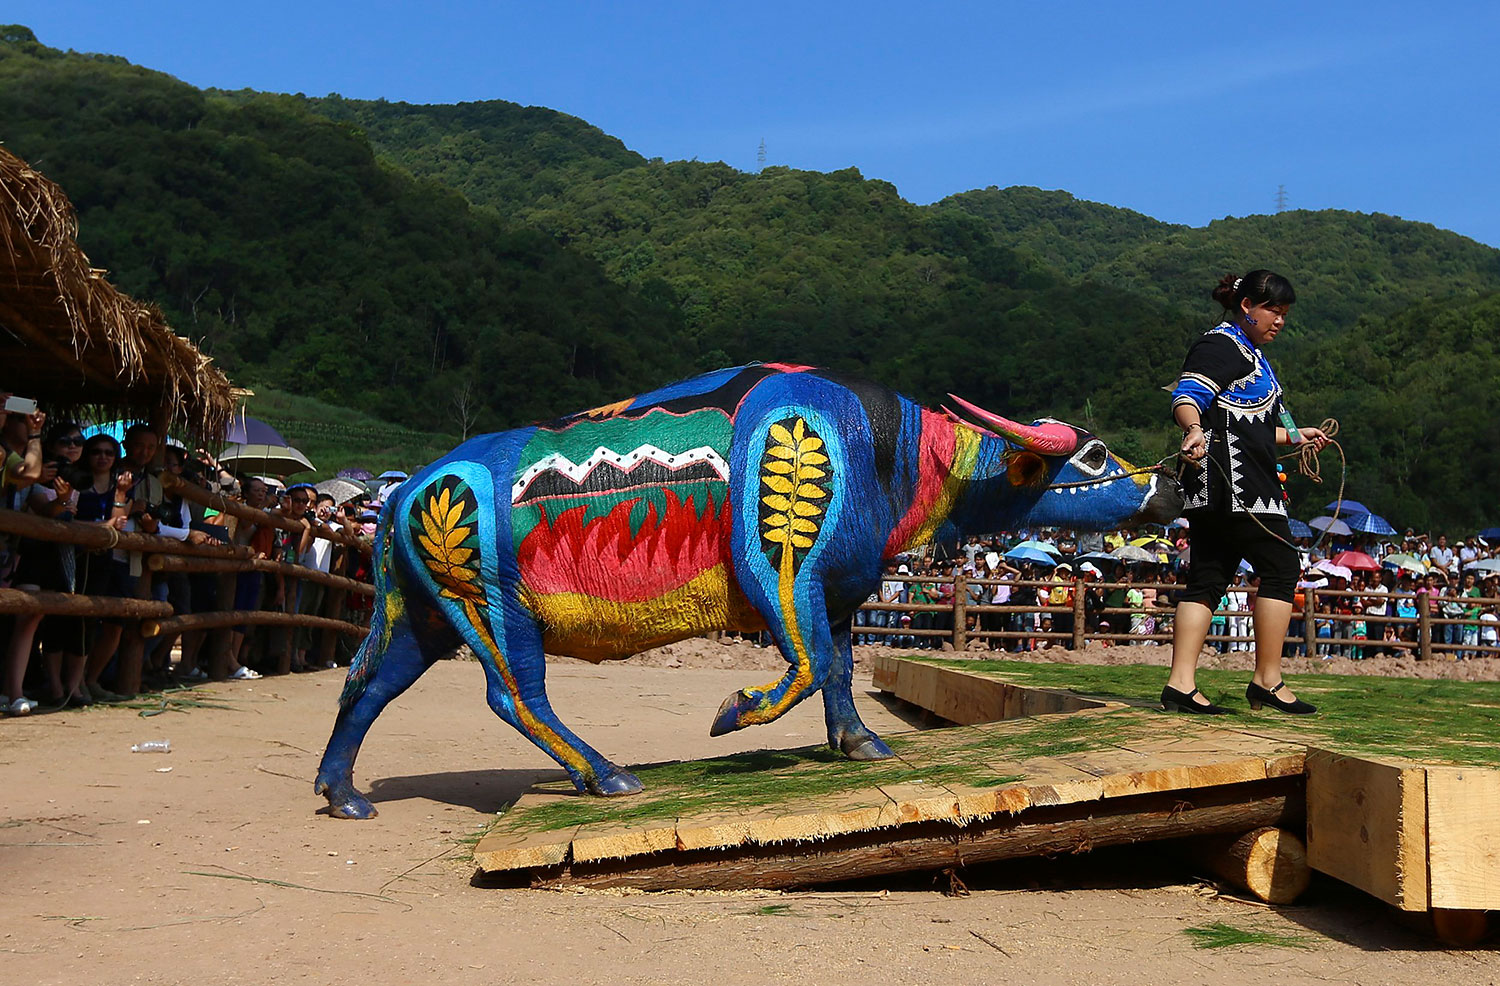 A woman leads her painted buffalo onto a stage during a buffalo bodypainting competition in Jiangcheng county, Yunnan province, China, May 18, 2014. Artists from eight countries painted on buffalos to compete for a 100,000 yuan ($16,042) prize reward during the competition on Sunday, according to local media.